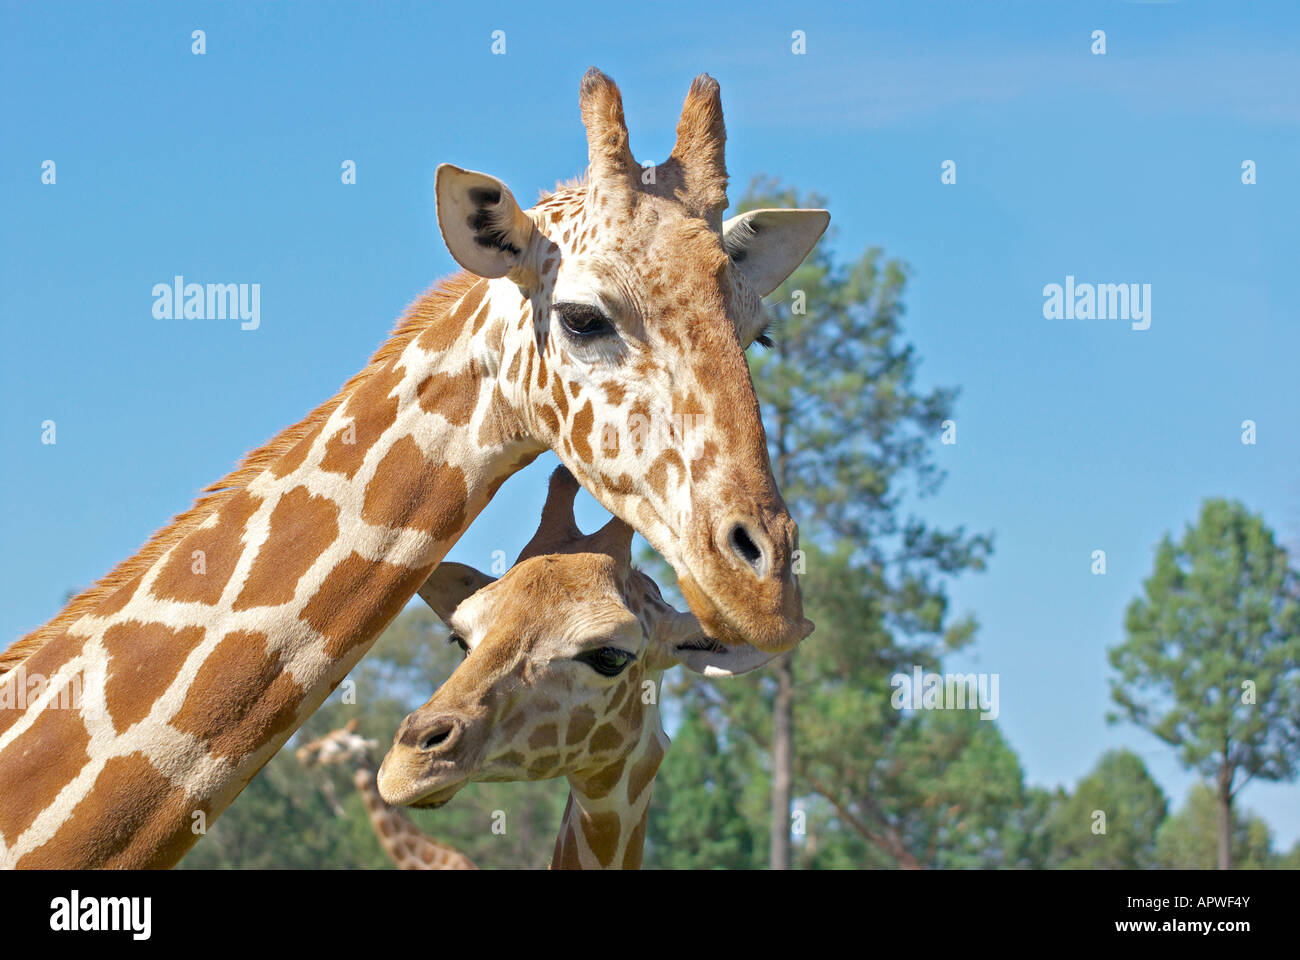 a mother and baby giraffe together - Stock Image